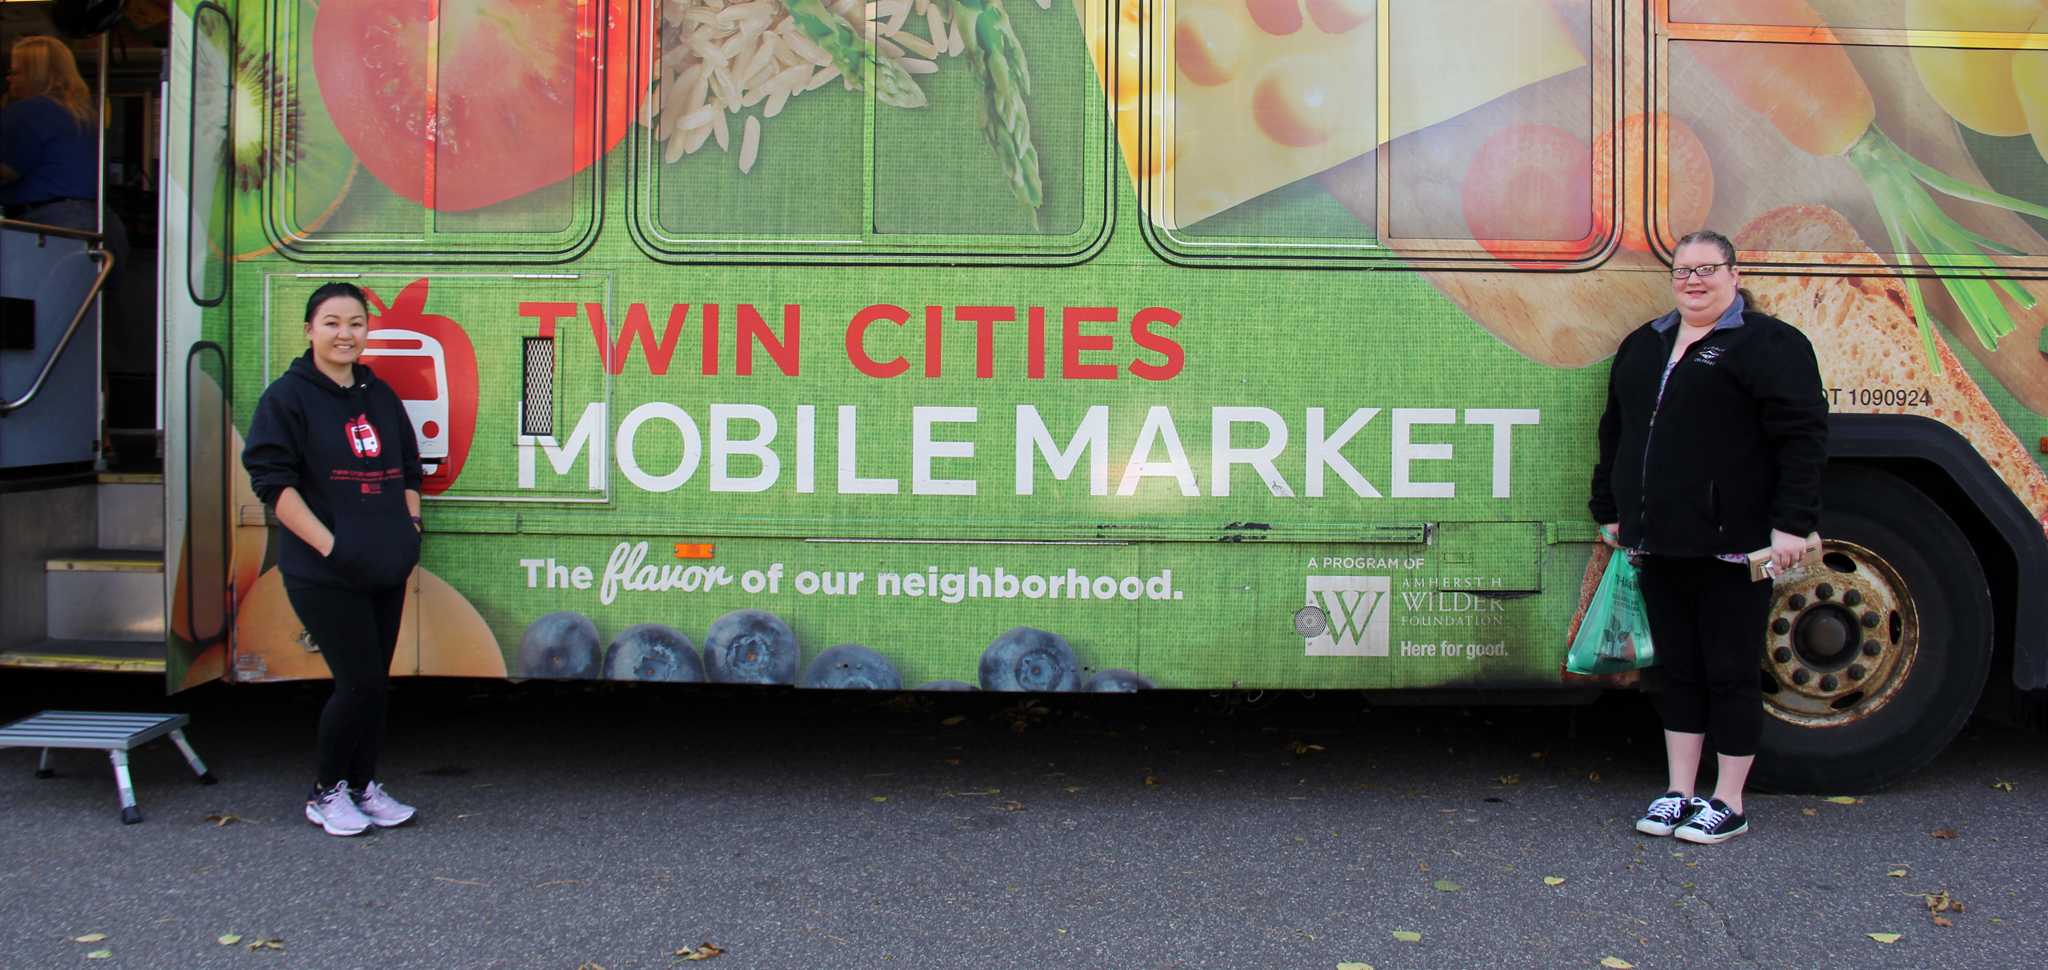 Two women standing in front of a Twin Cities Mobile Market bus